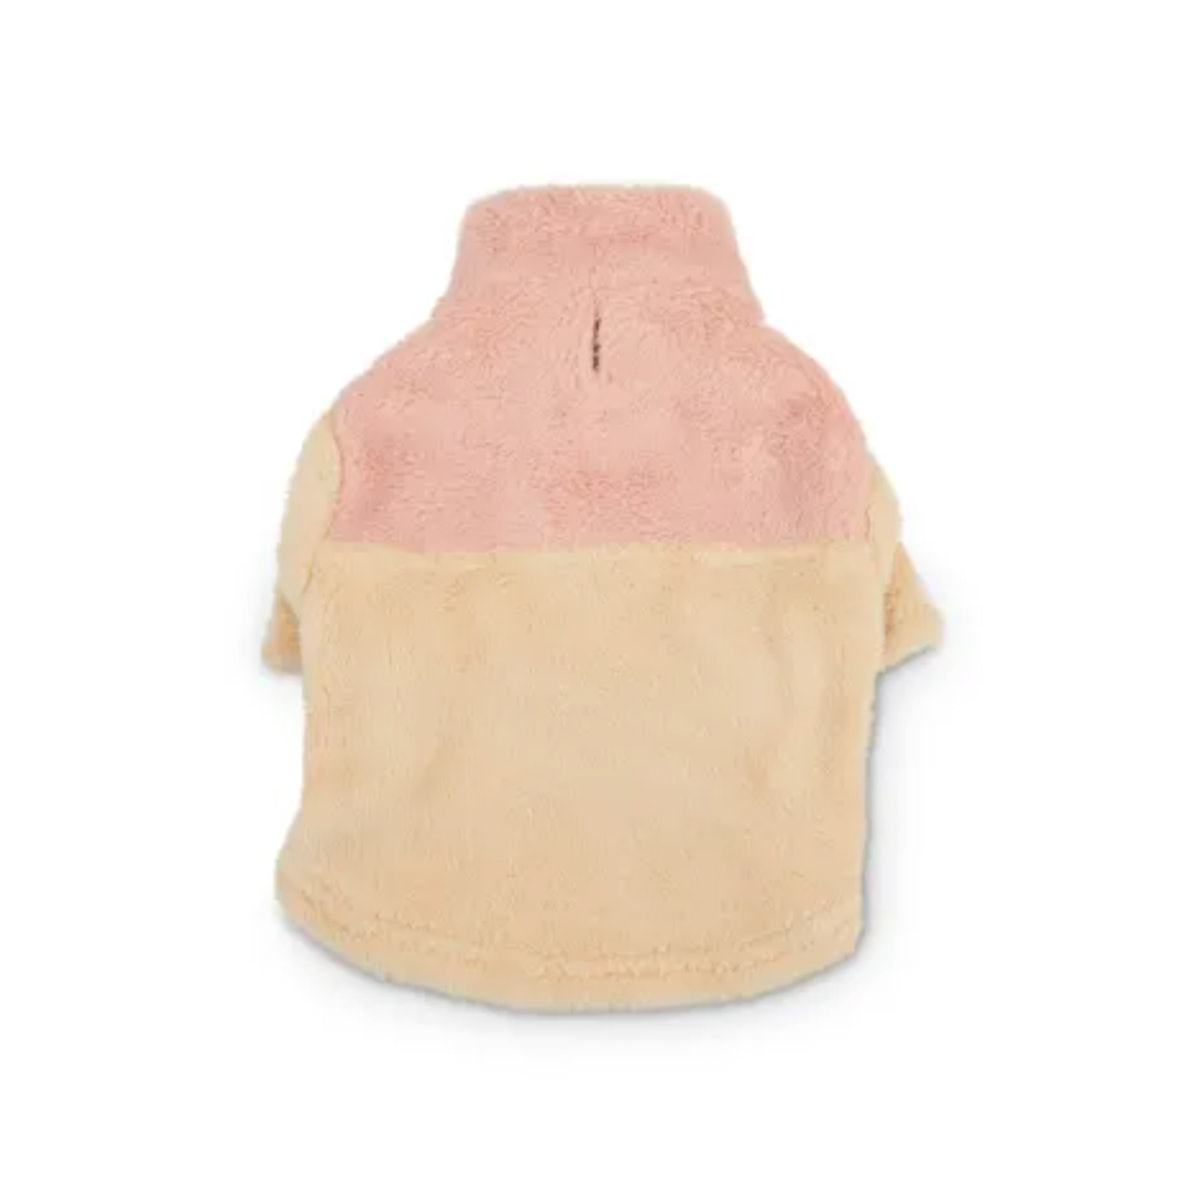 Reddy Pink & Olive High-Pile Fleece Dog Sweater, X-Small